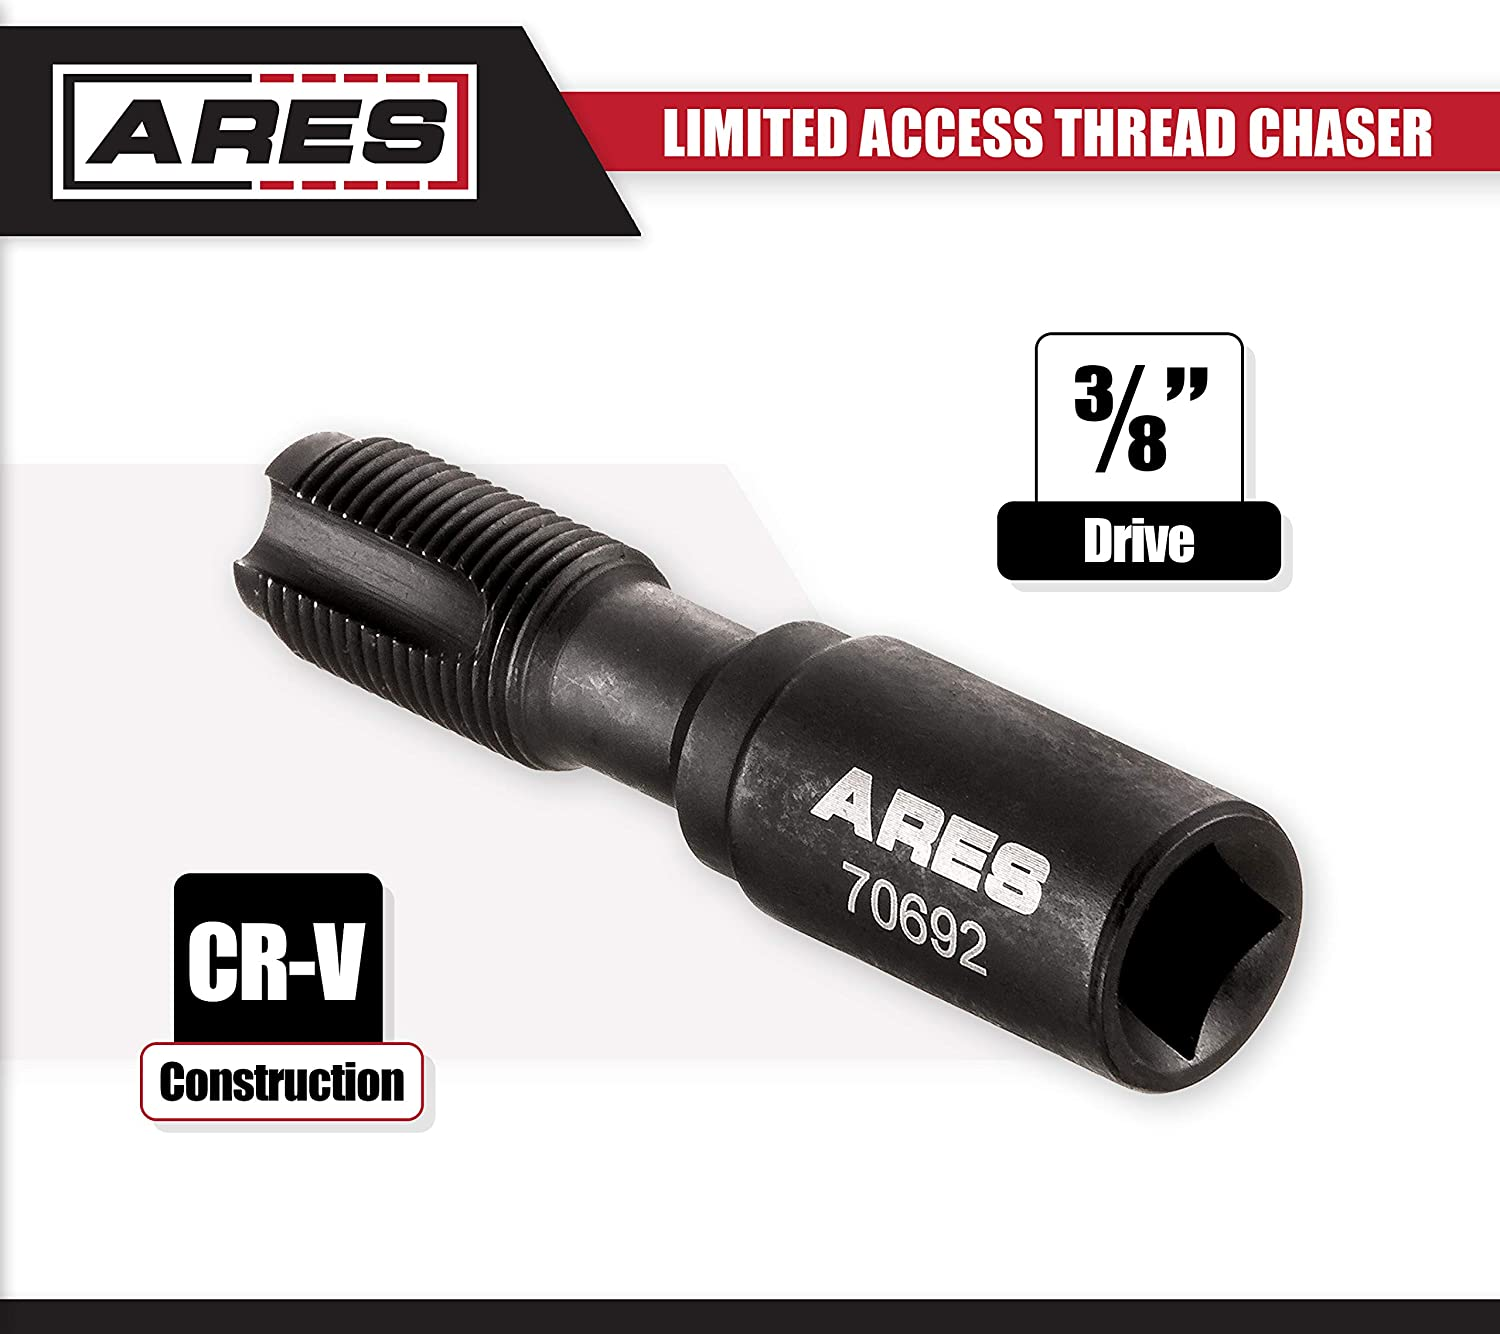 ARES 70692 Limited Access Thread Chaser Perfect for Spark Plug Holes in Confined and Limited Access Areas Fits M14 x 1.25mm Size Plugs